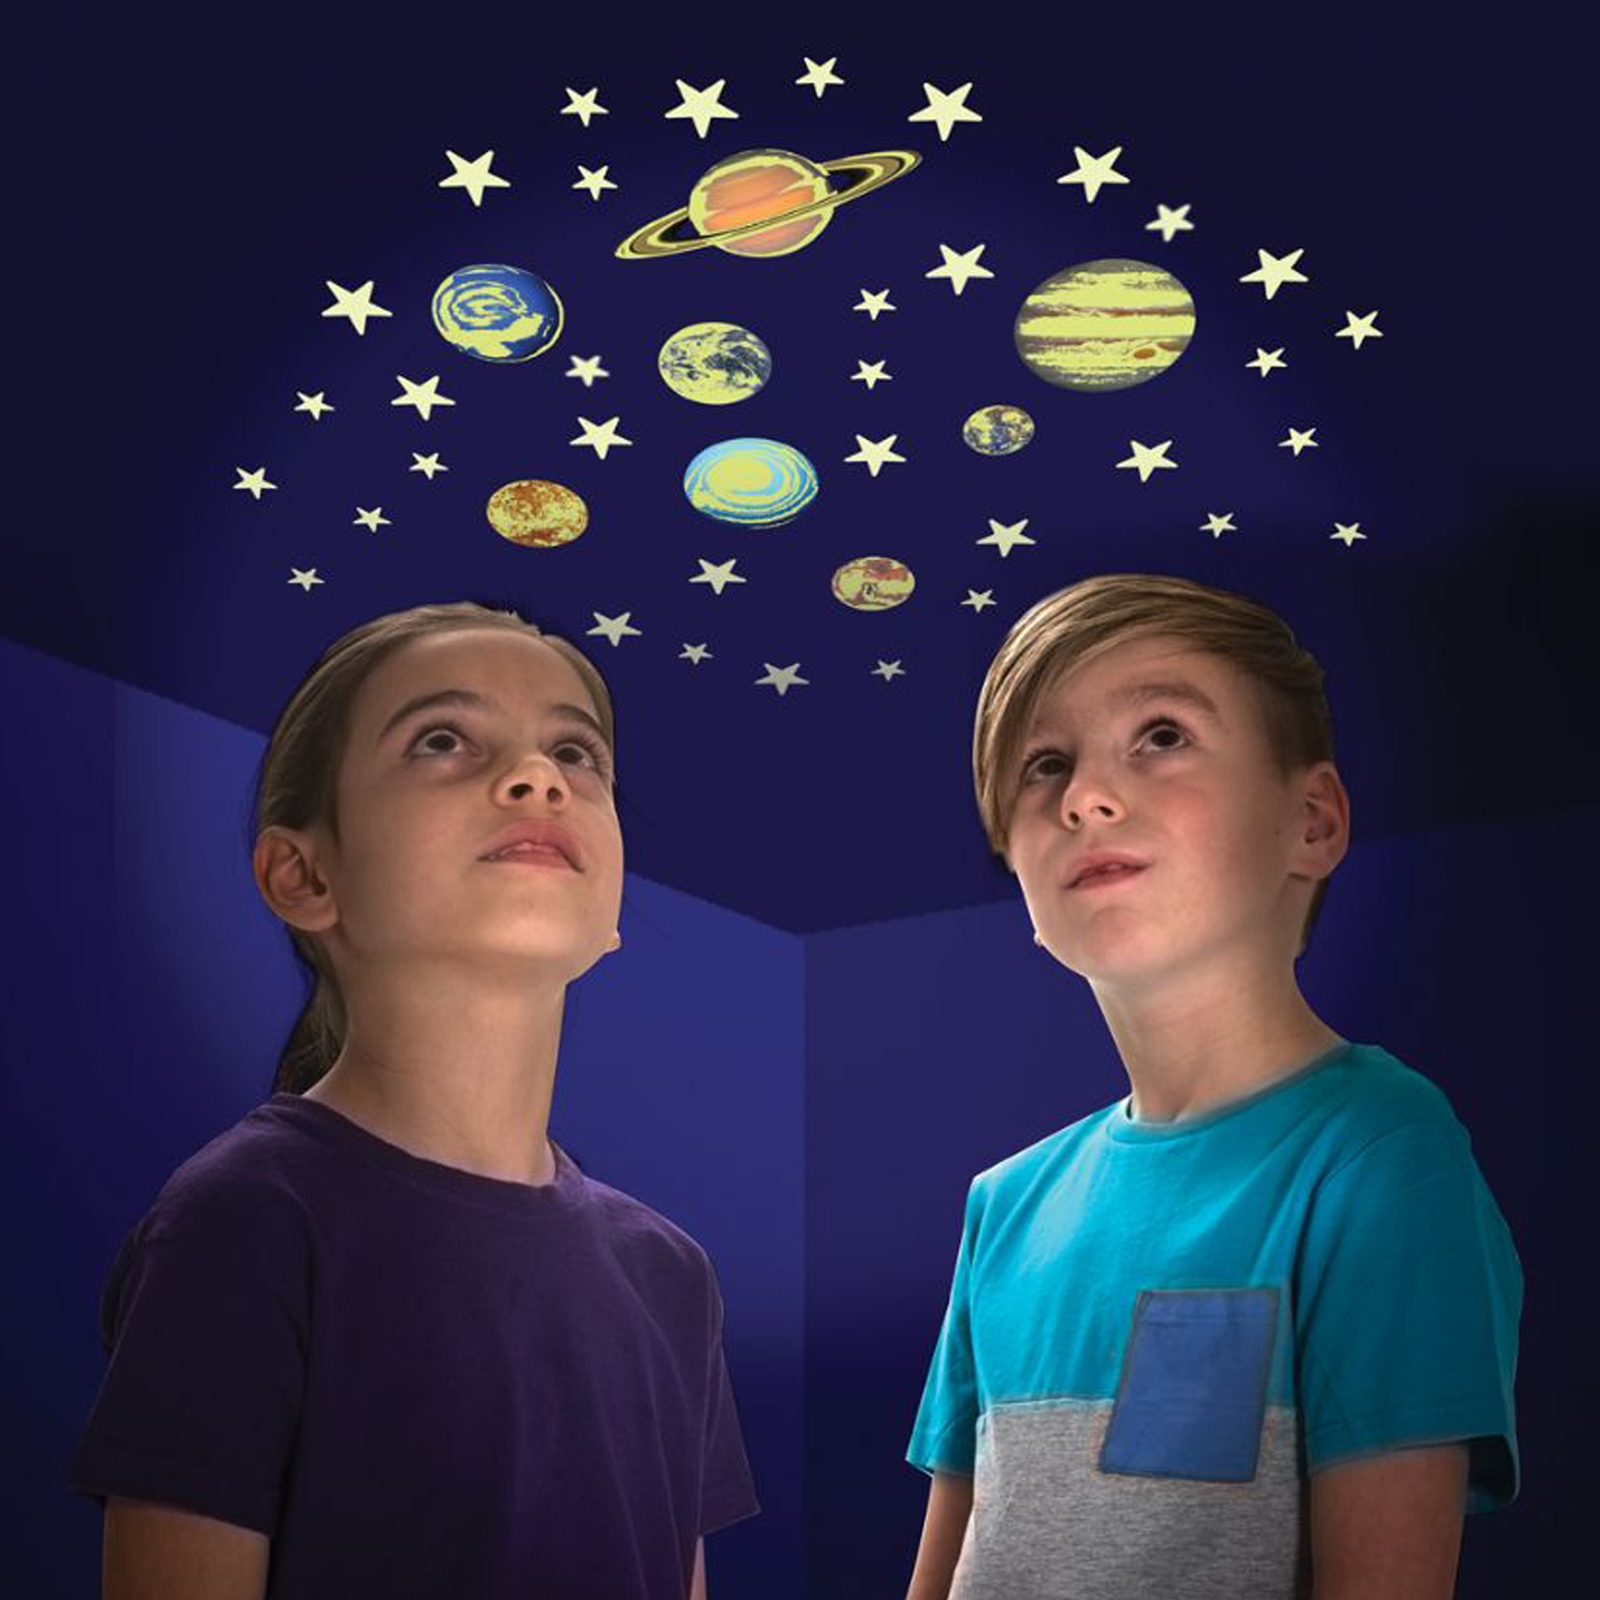 Glow Planets And Stars 8 Pack